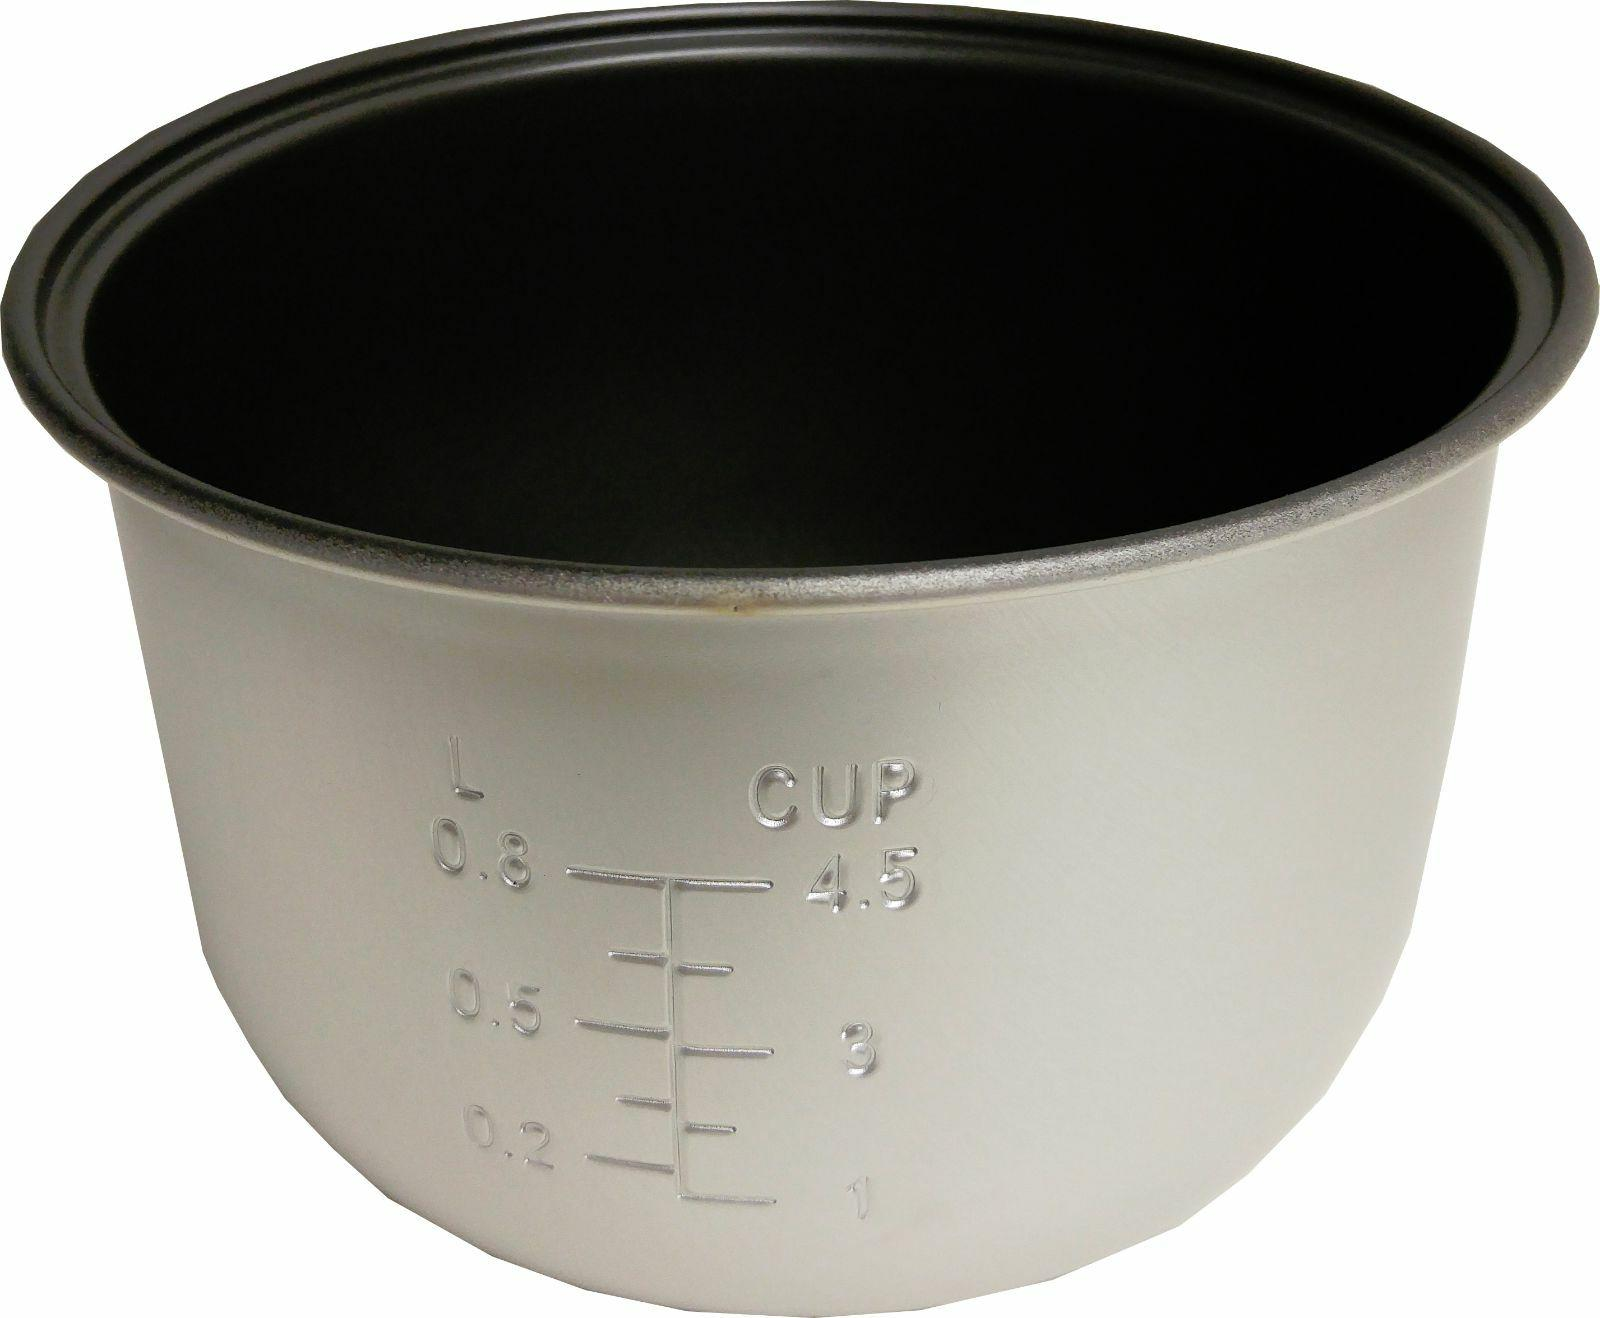 cooking pot for 4 5 cup rice